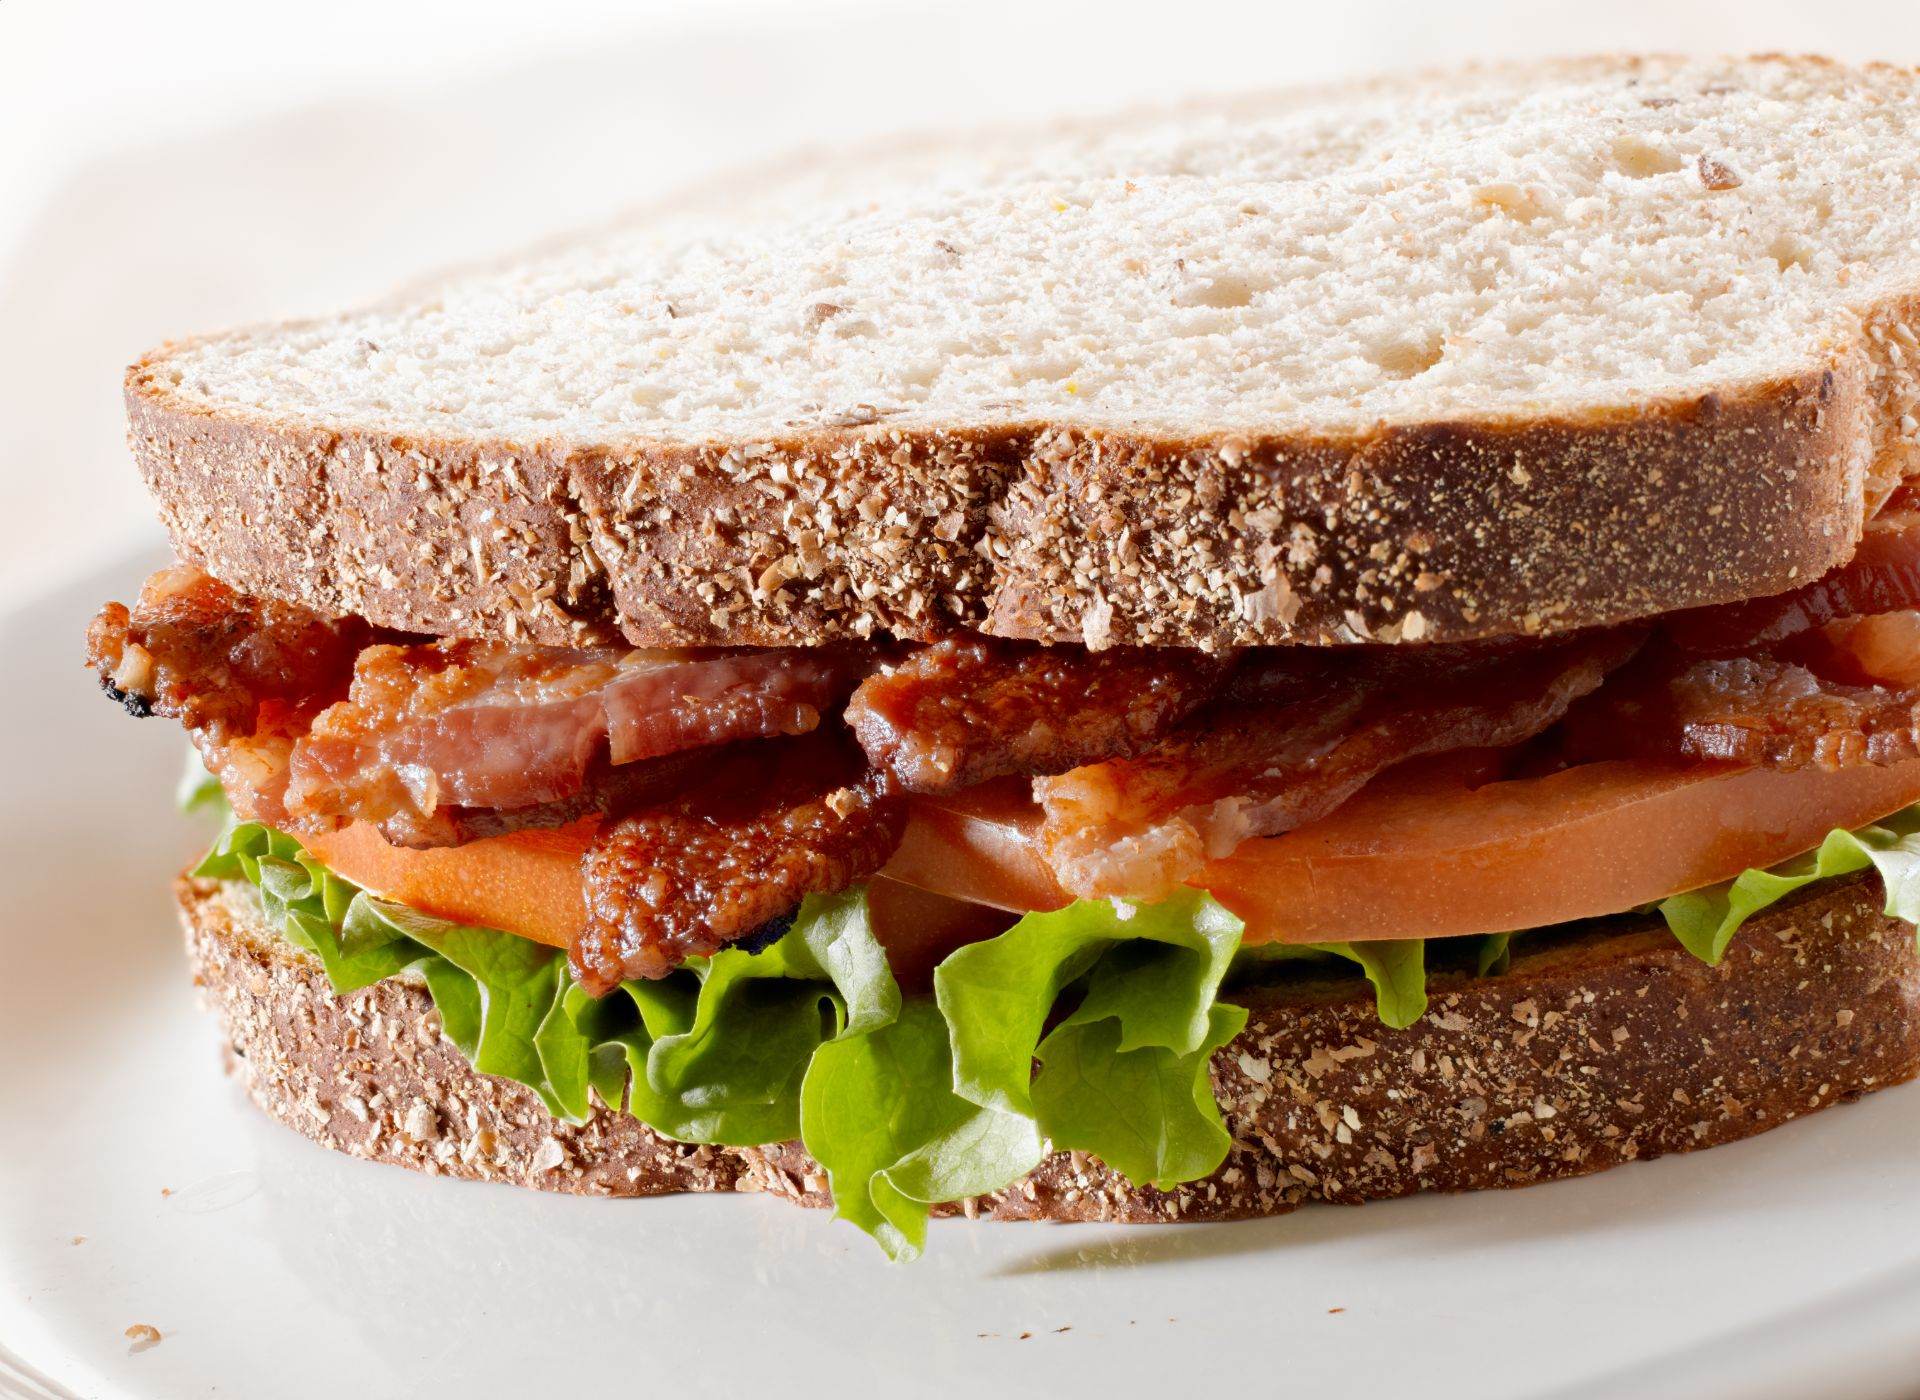 BLT sandwich on whole wheat toast bread